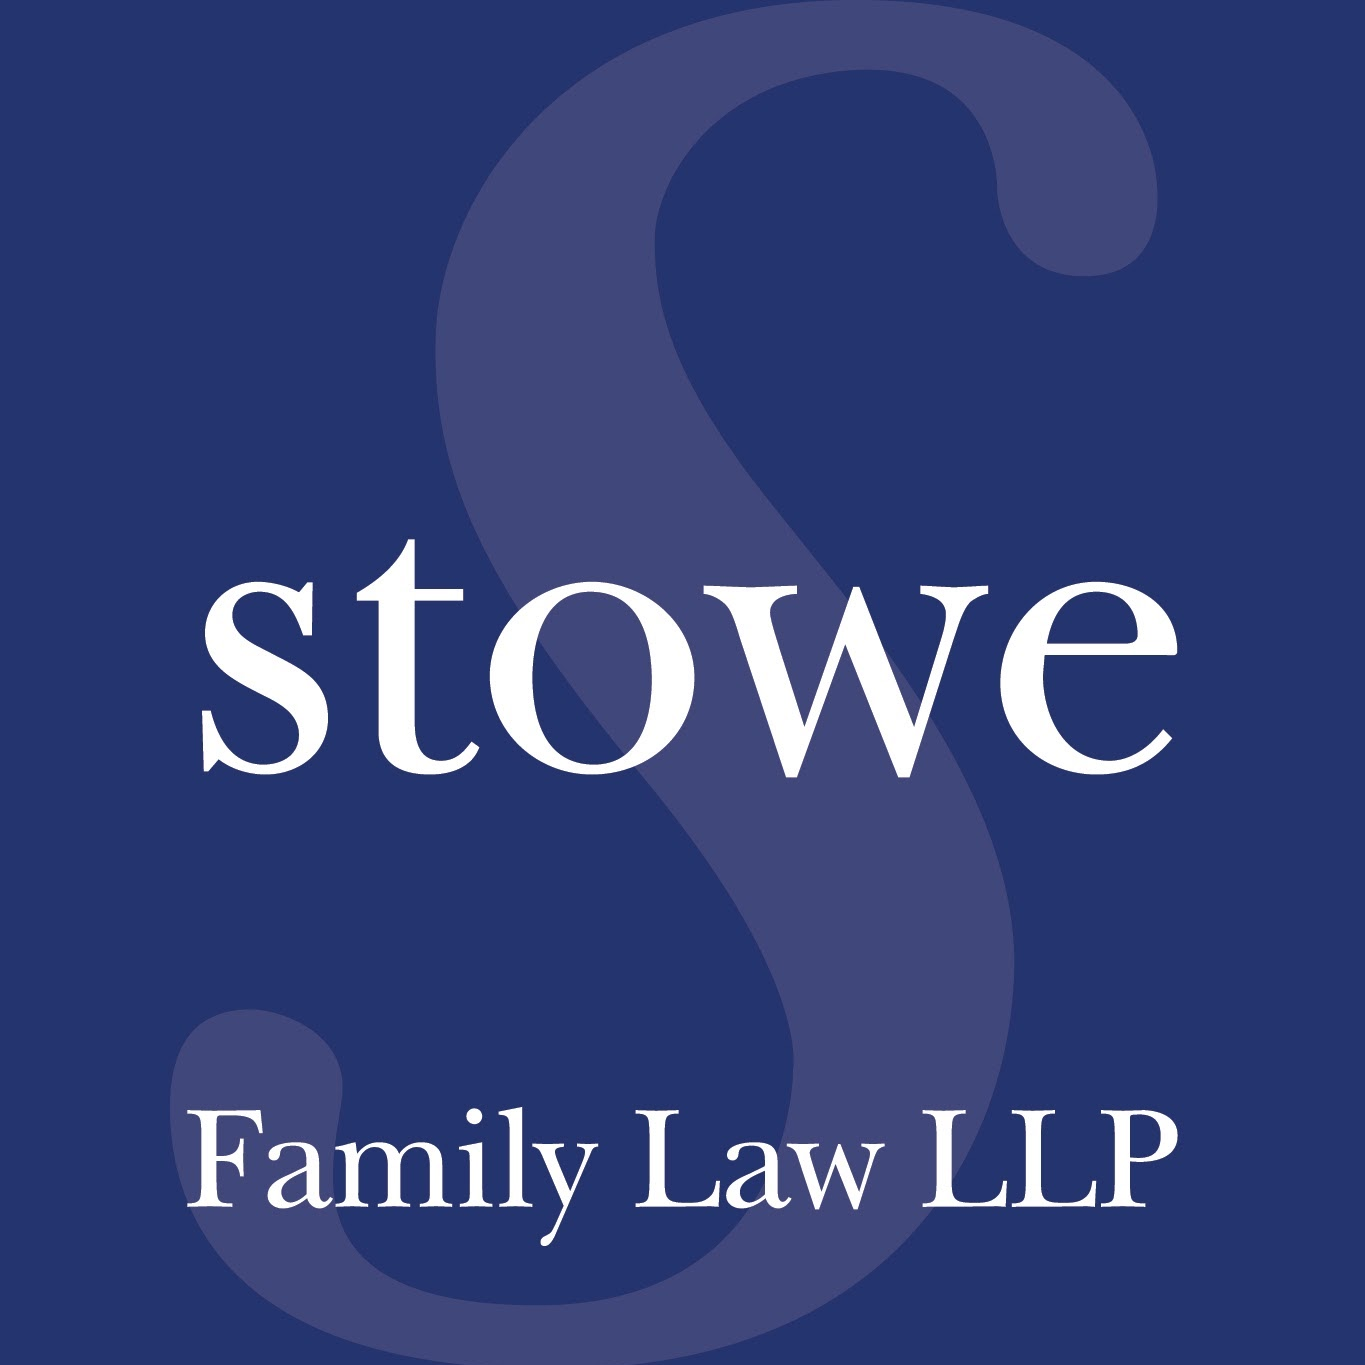 Stowe Family Law LLP Manchester 01613 595534